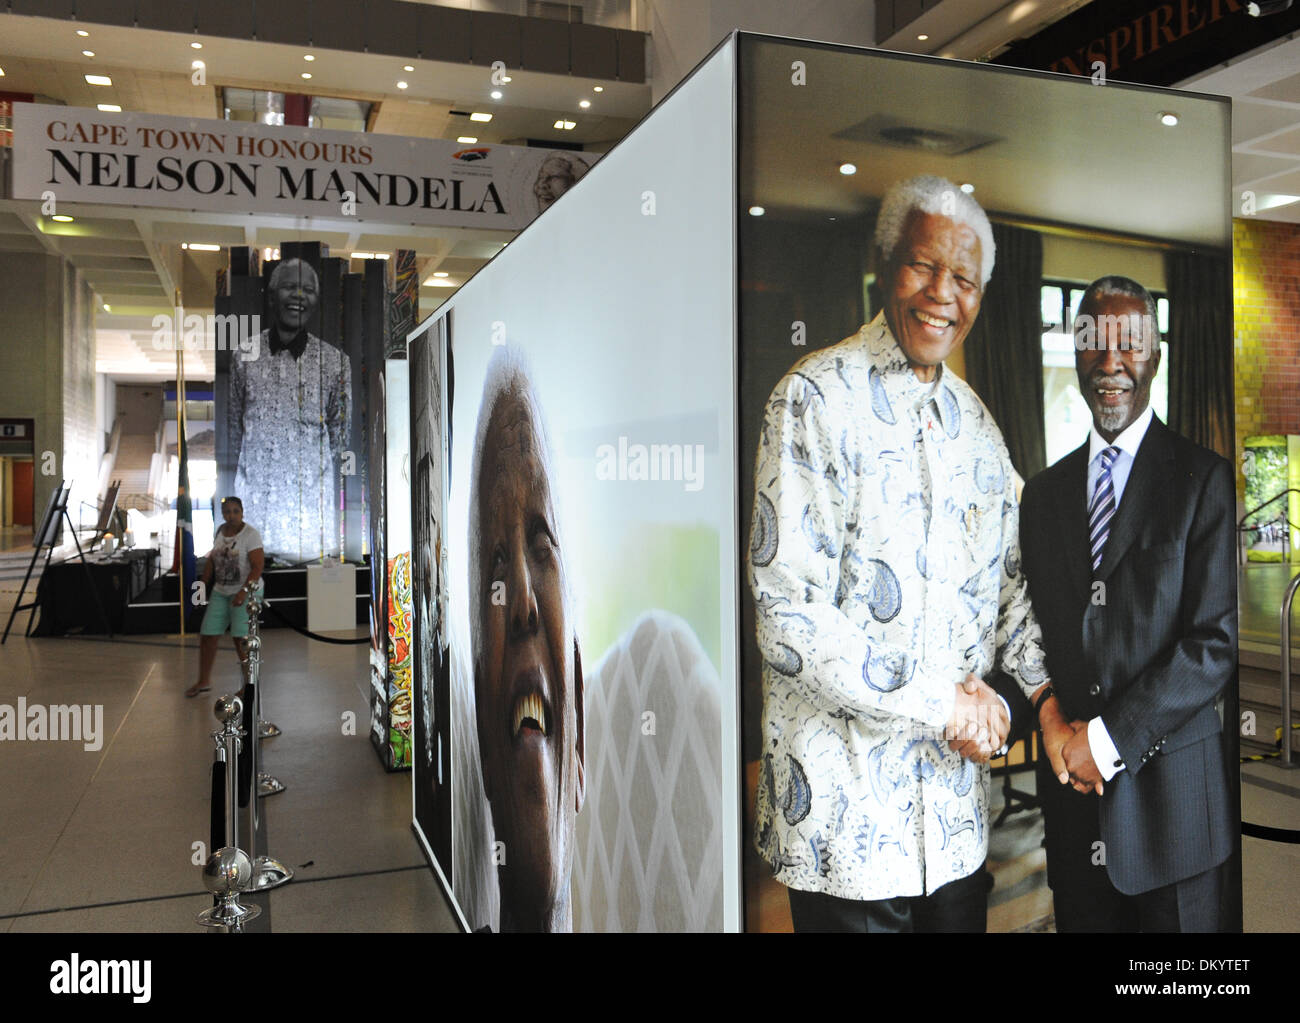 Cape Town, South Africa. 8th Sep, 2013. The City of Cape Town is hosting a photo exhibition of the late President Nelson Mandela in the Civic Centre in Cape Town, South Africa. Visitors also placed flowers and wrote condolence messages.  Photo by Roger Sedres/ImageSA/Alamy Live News - Stock Image